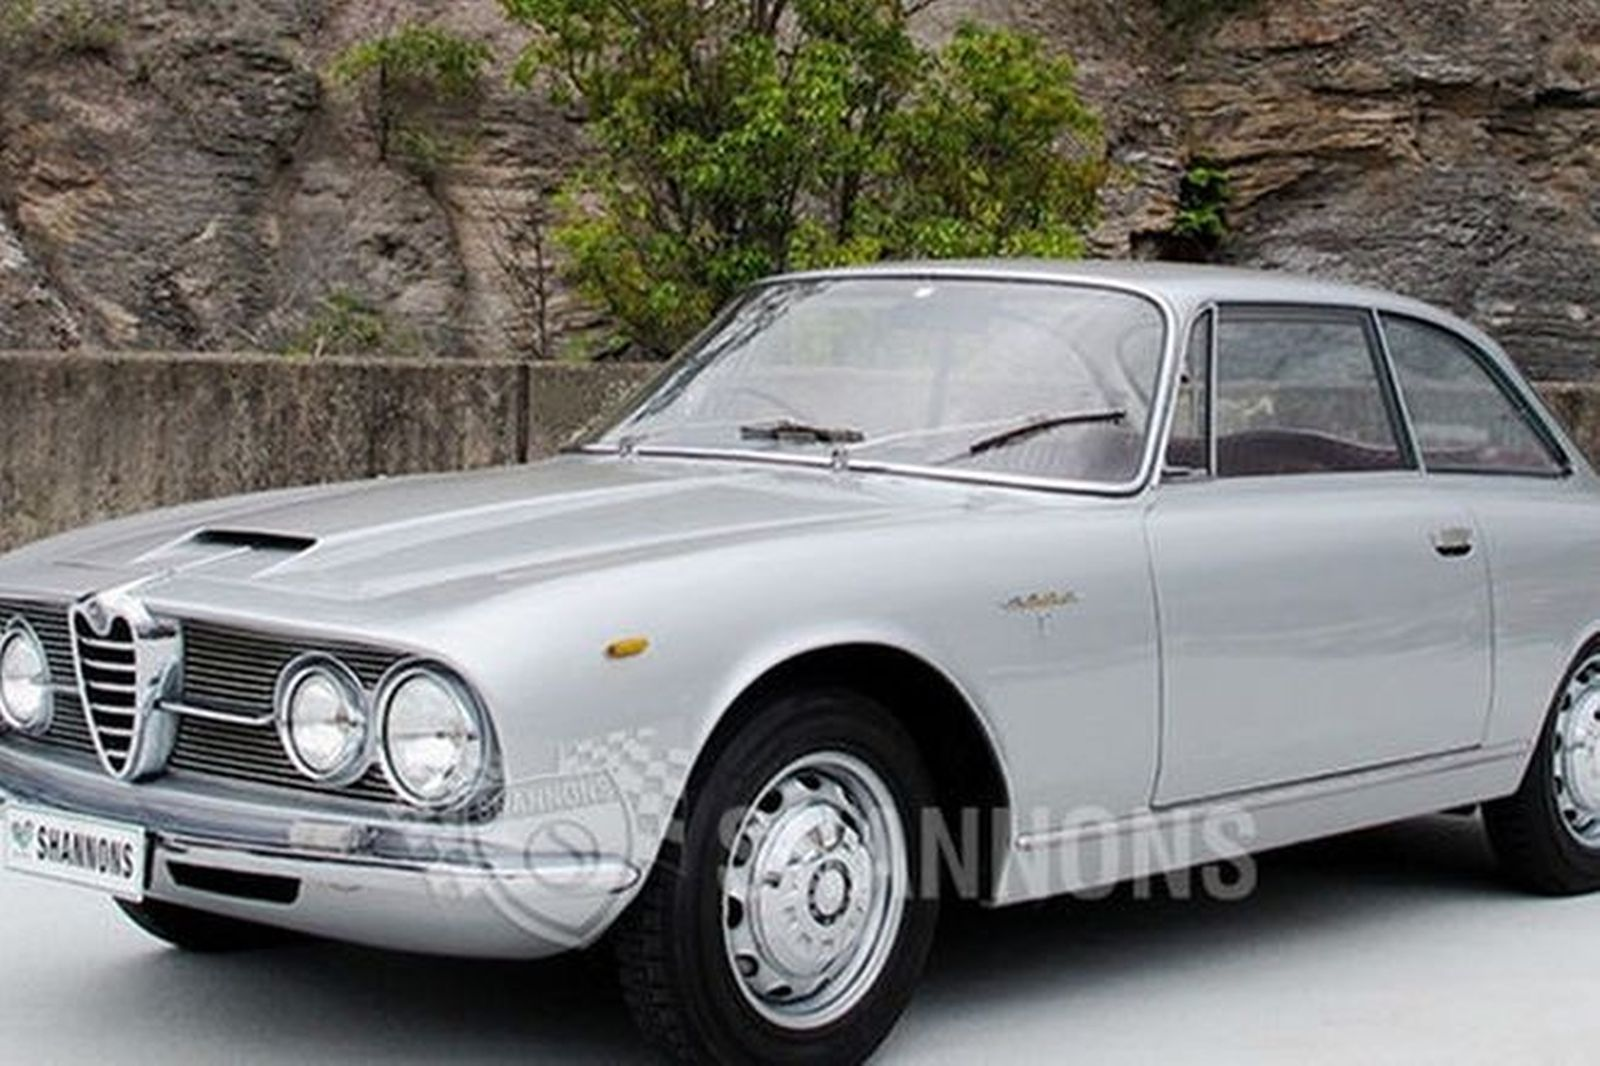 Sold Alfa Romeo Sprint Coupe Auctions Lot Shannons - Alfa romeo 2600 sprint for sale